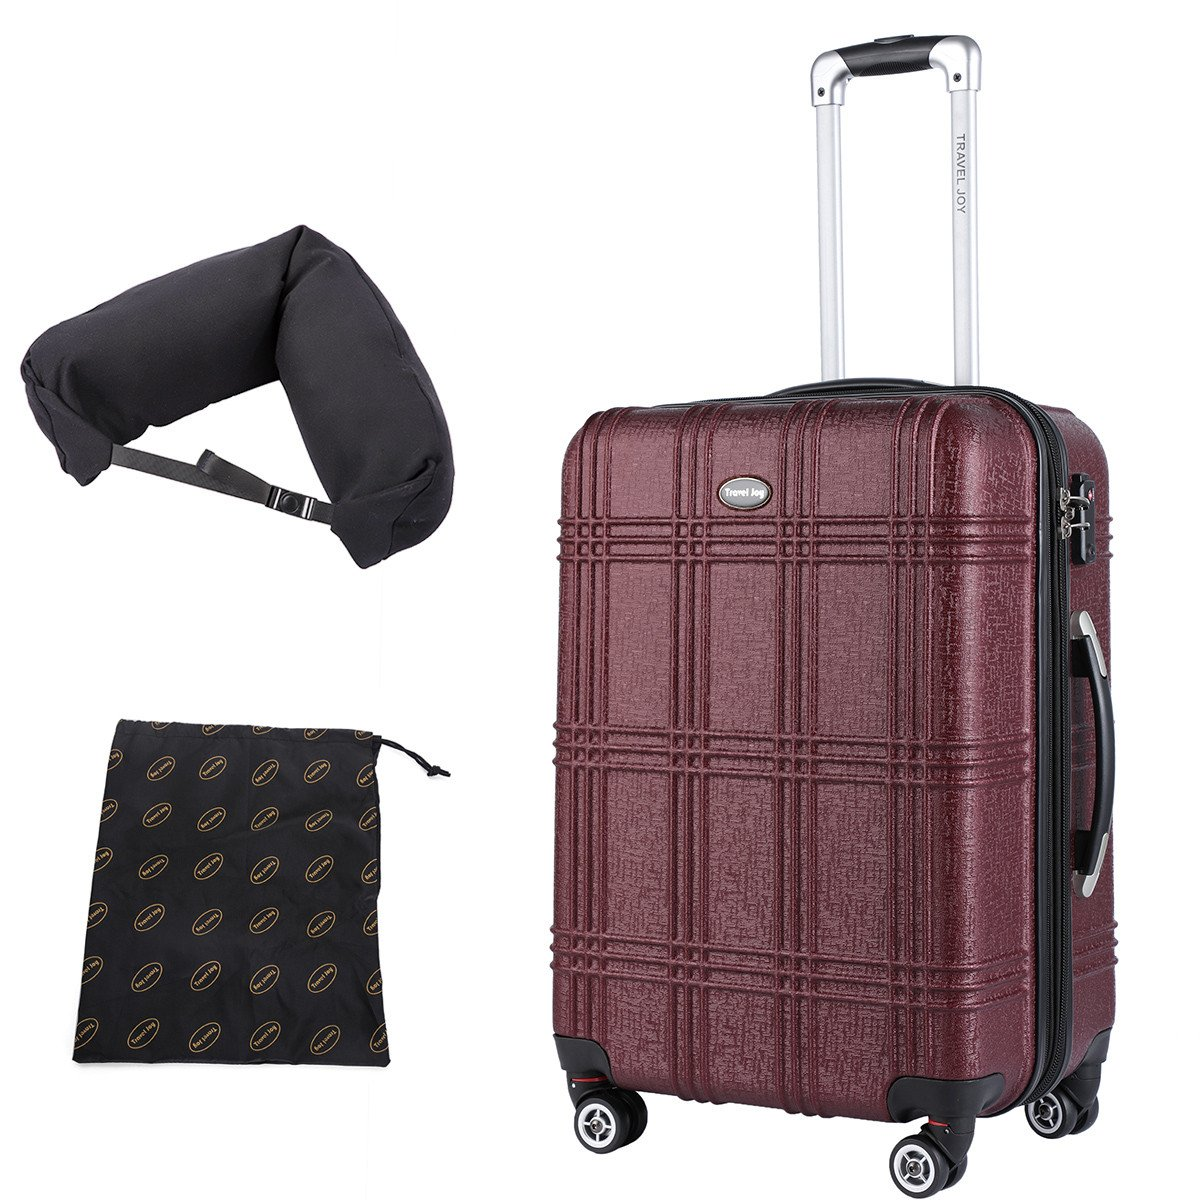 Expandable Carry On Luggage Lightweight Spinner Carry Ons TSA Hardside Luggage Suitcase, 20 inches (BURGUNDY)